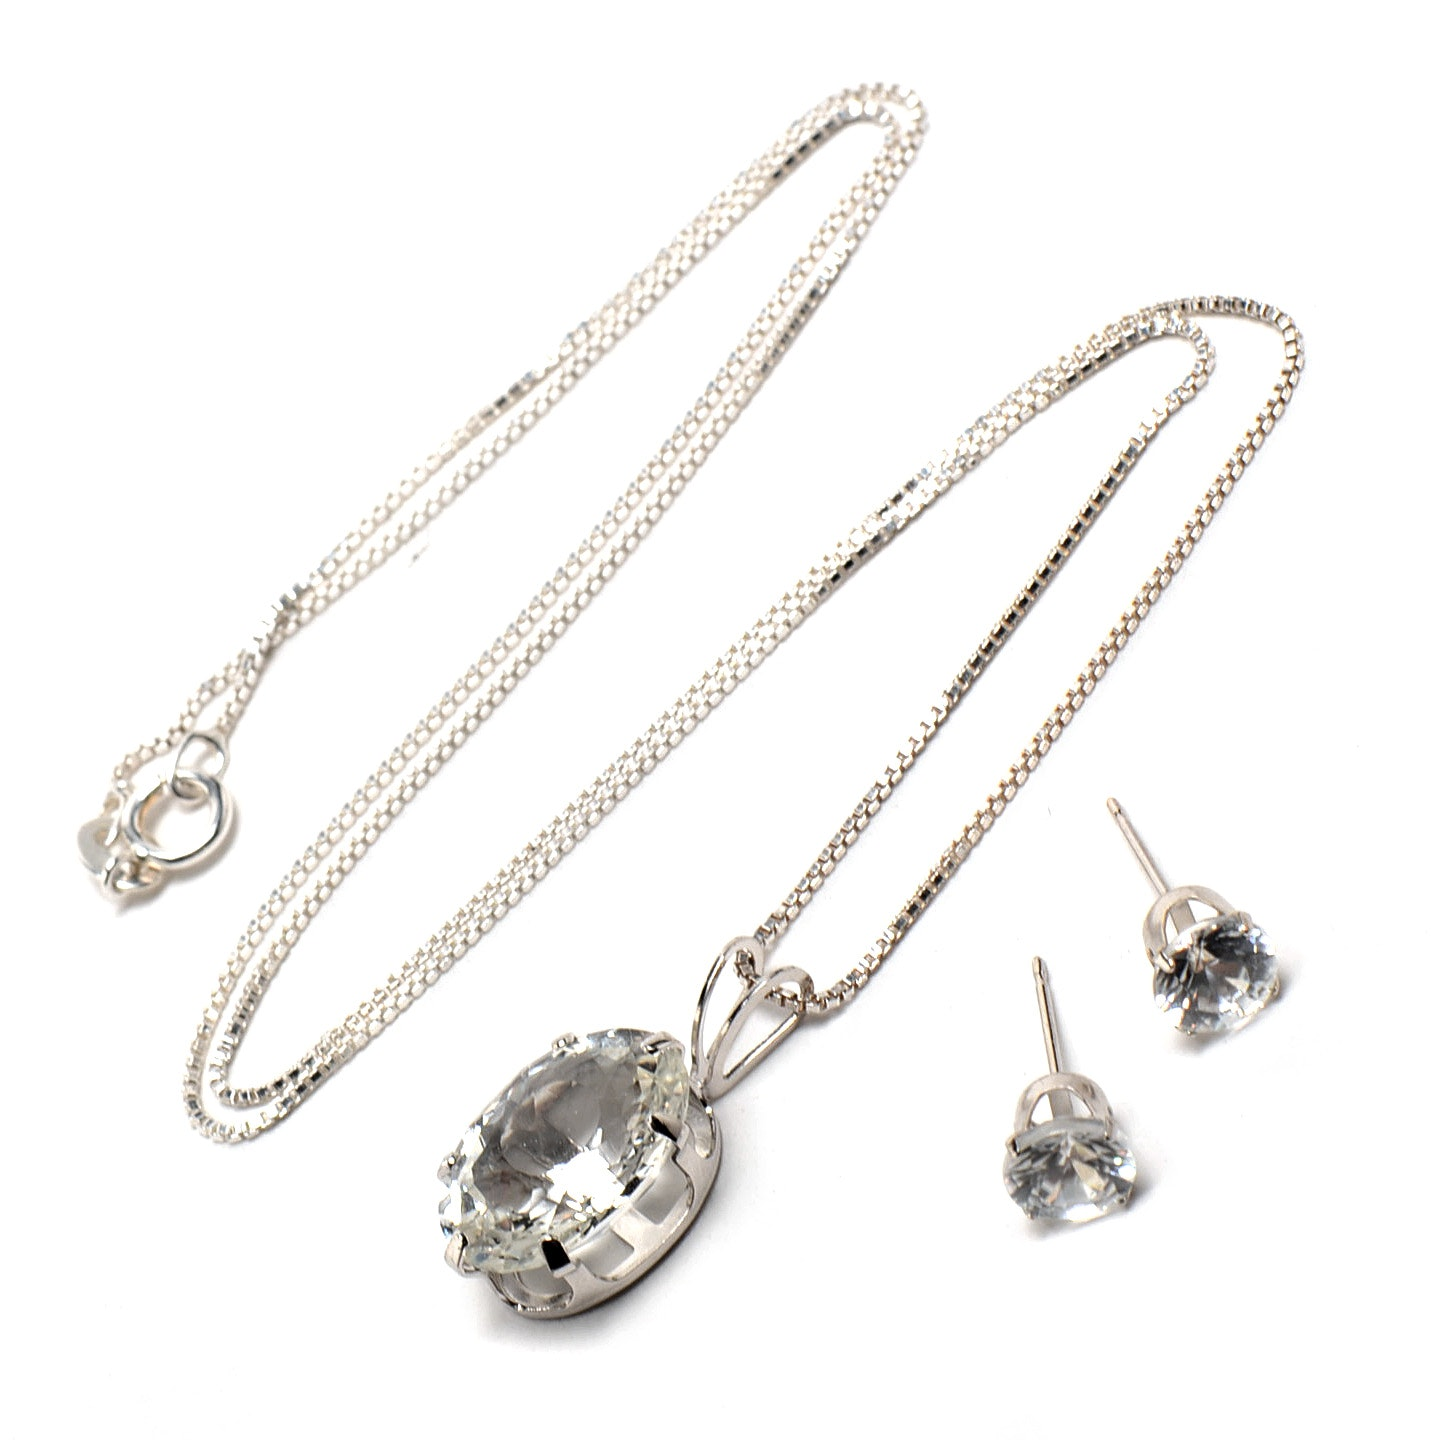 14K White Gold and Sterling Silver Topaz Necklace and Earrings